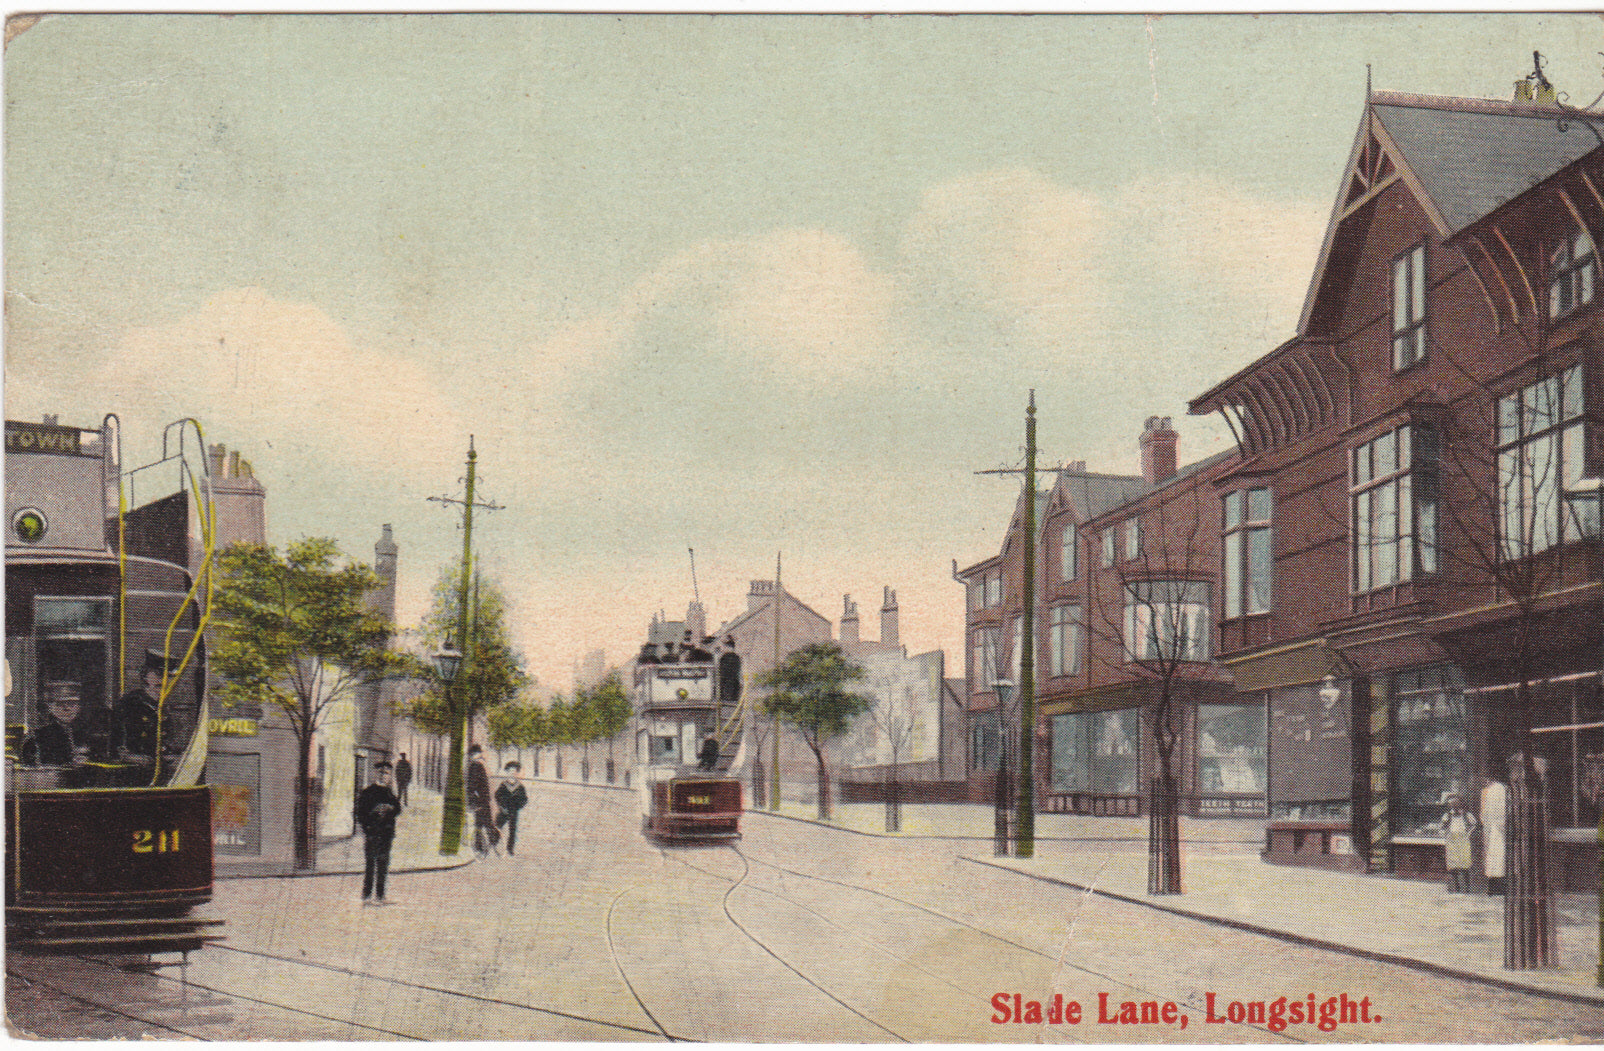 Slade Lane, Longsight, Manchester